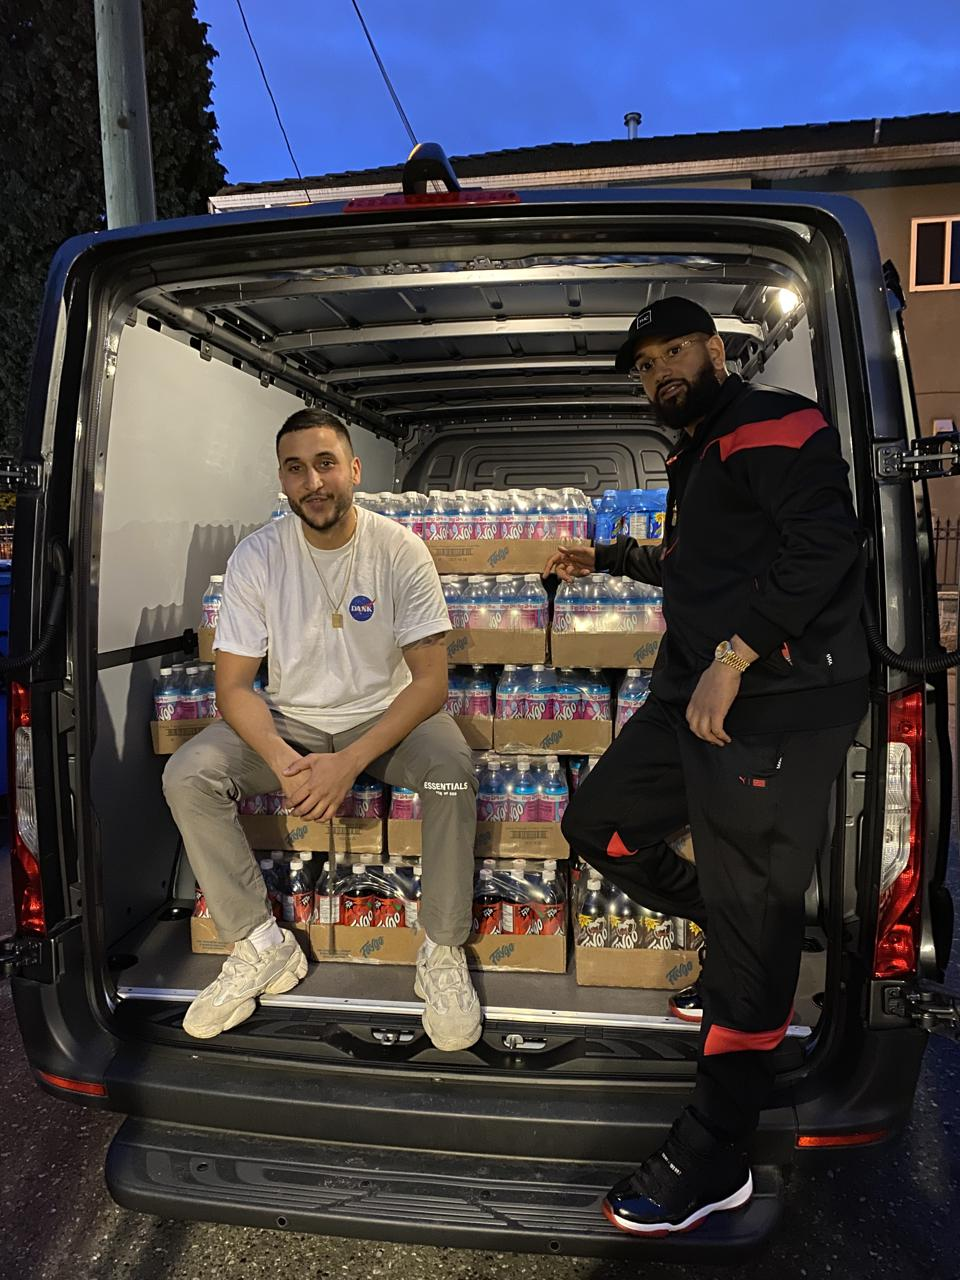 Shakur, left, and Sangara, right, in a van loaded with a fresh delivery for Dank Mart.